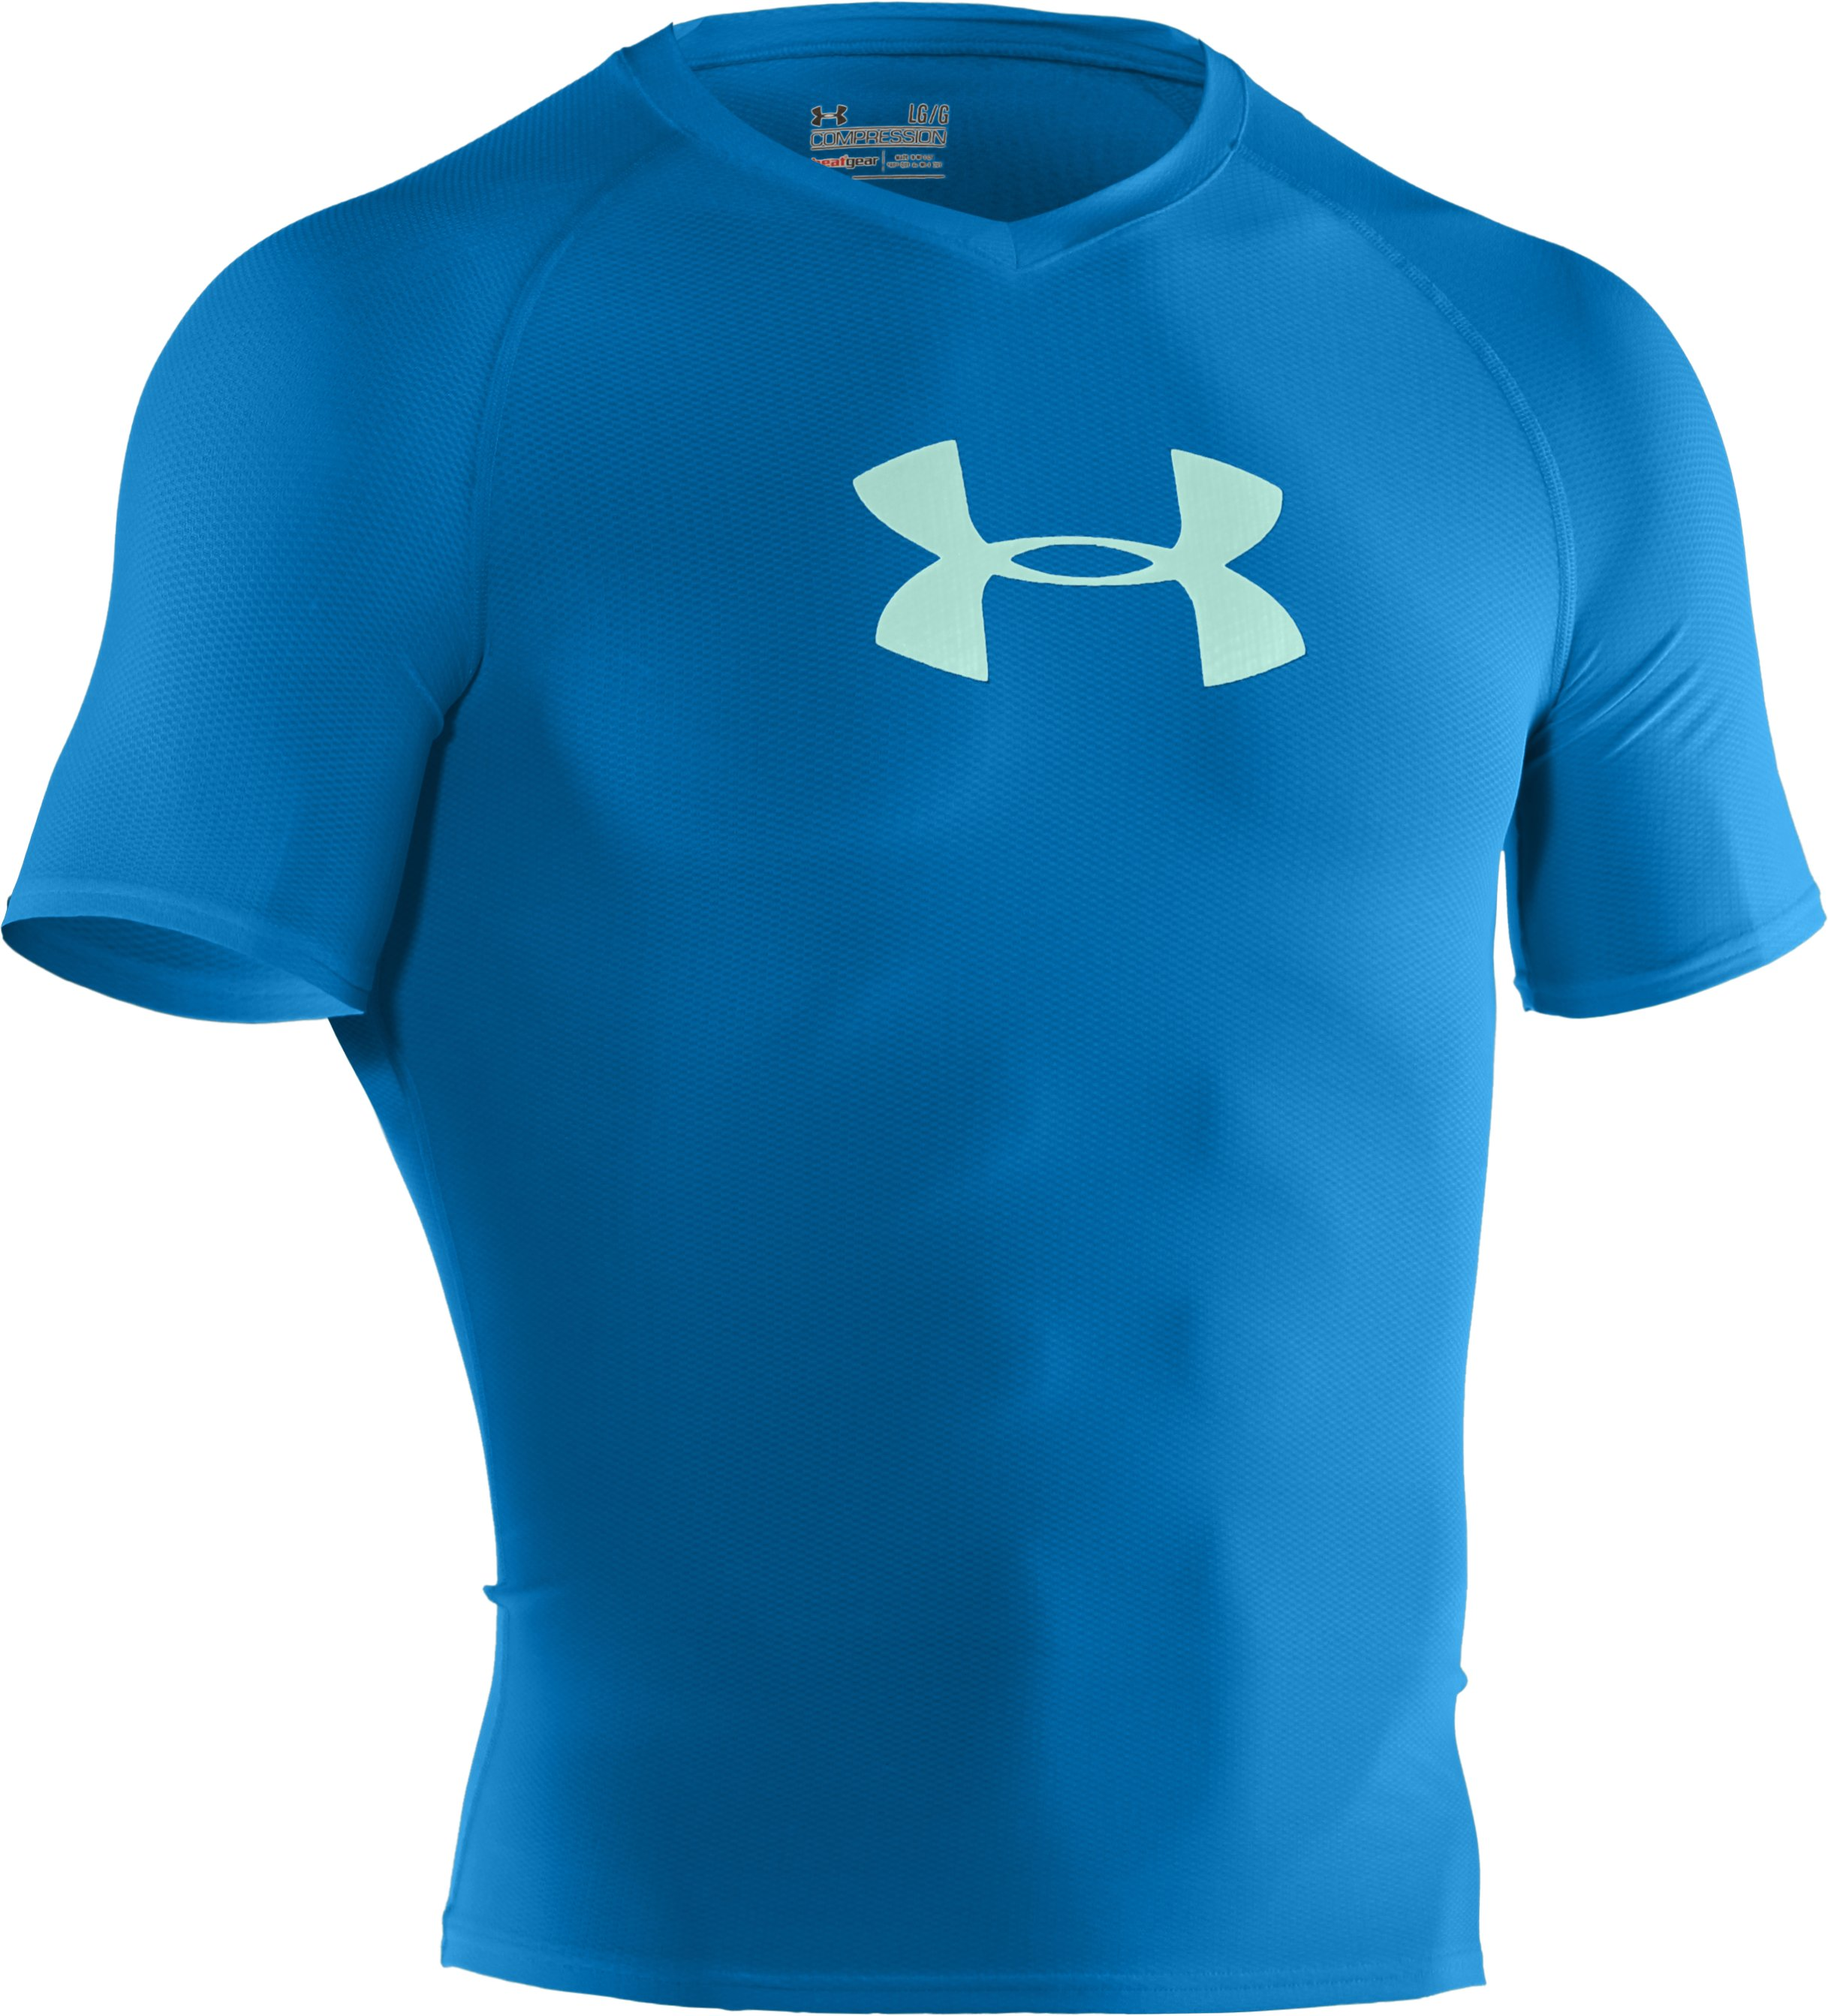 Men's UA Keewaydin Rash Guard, St. Tropez